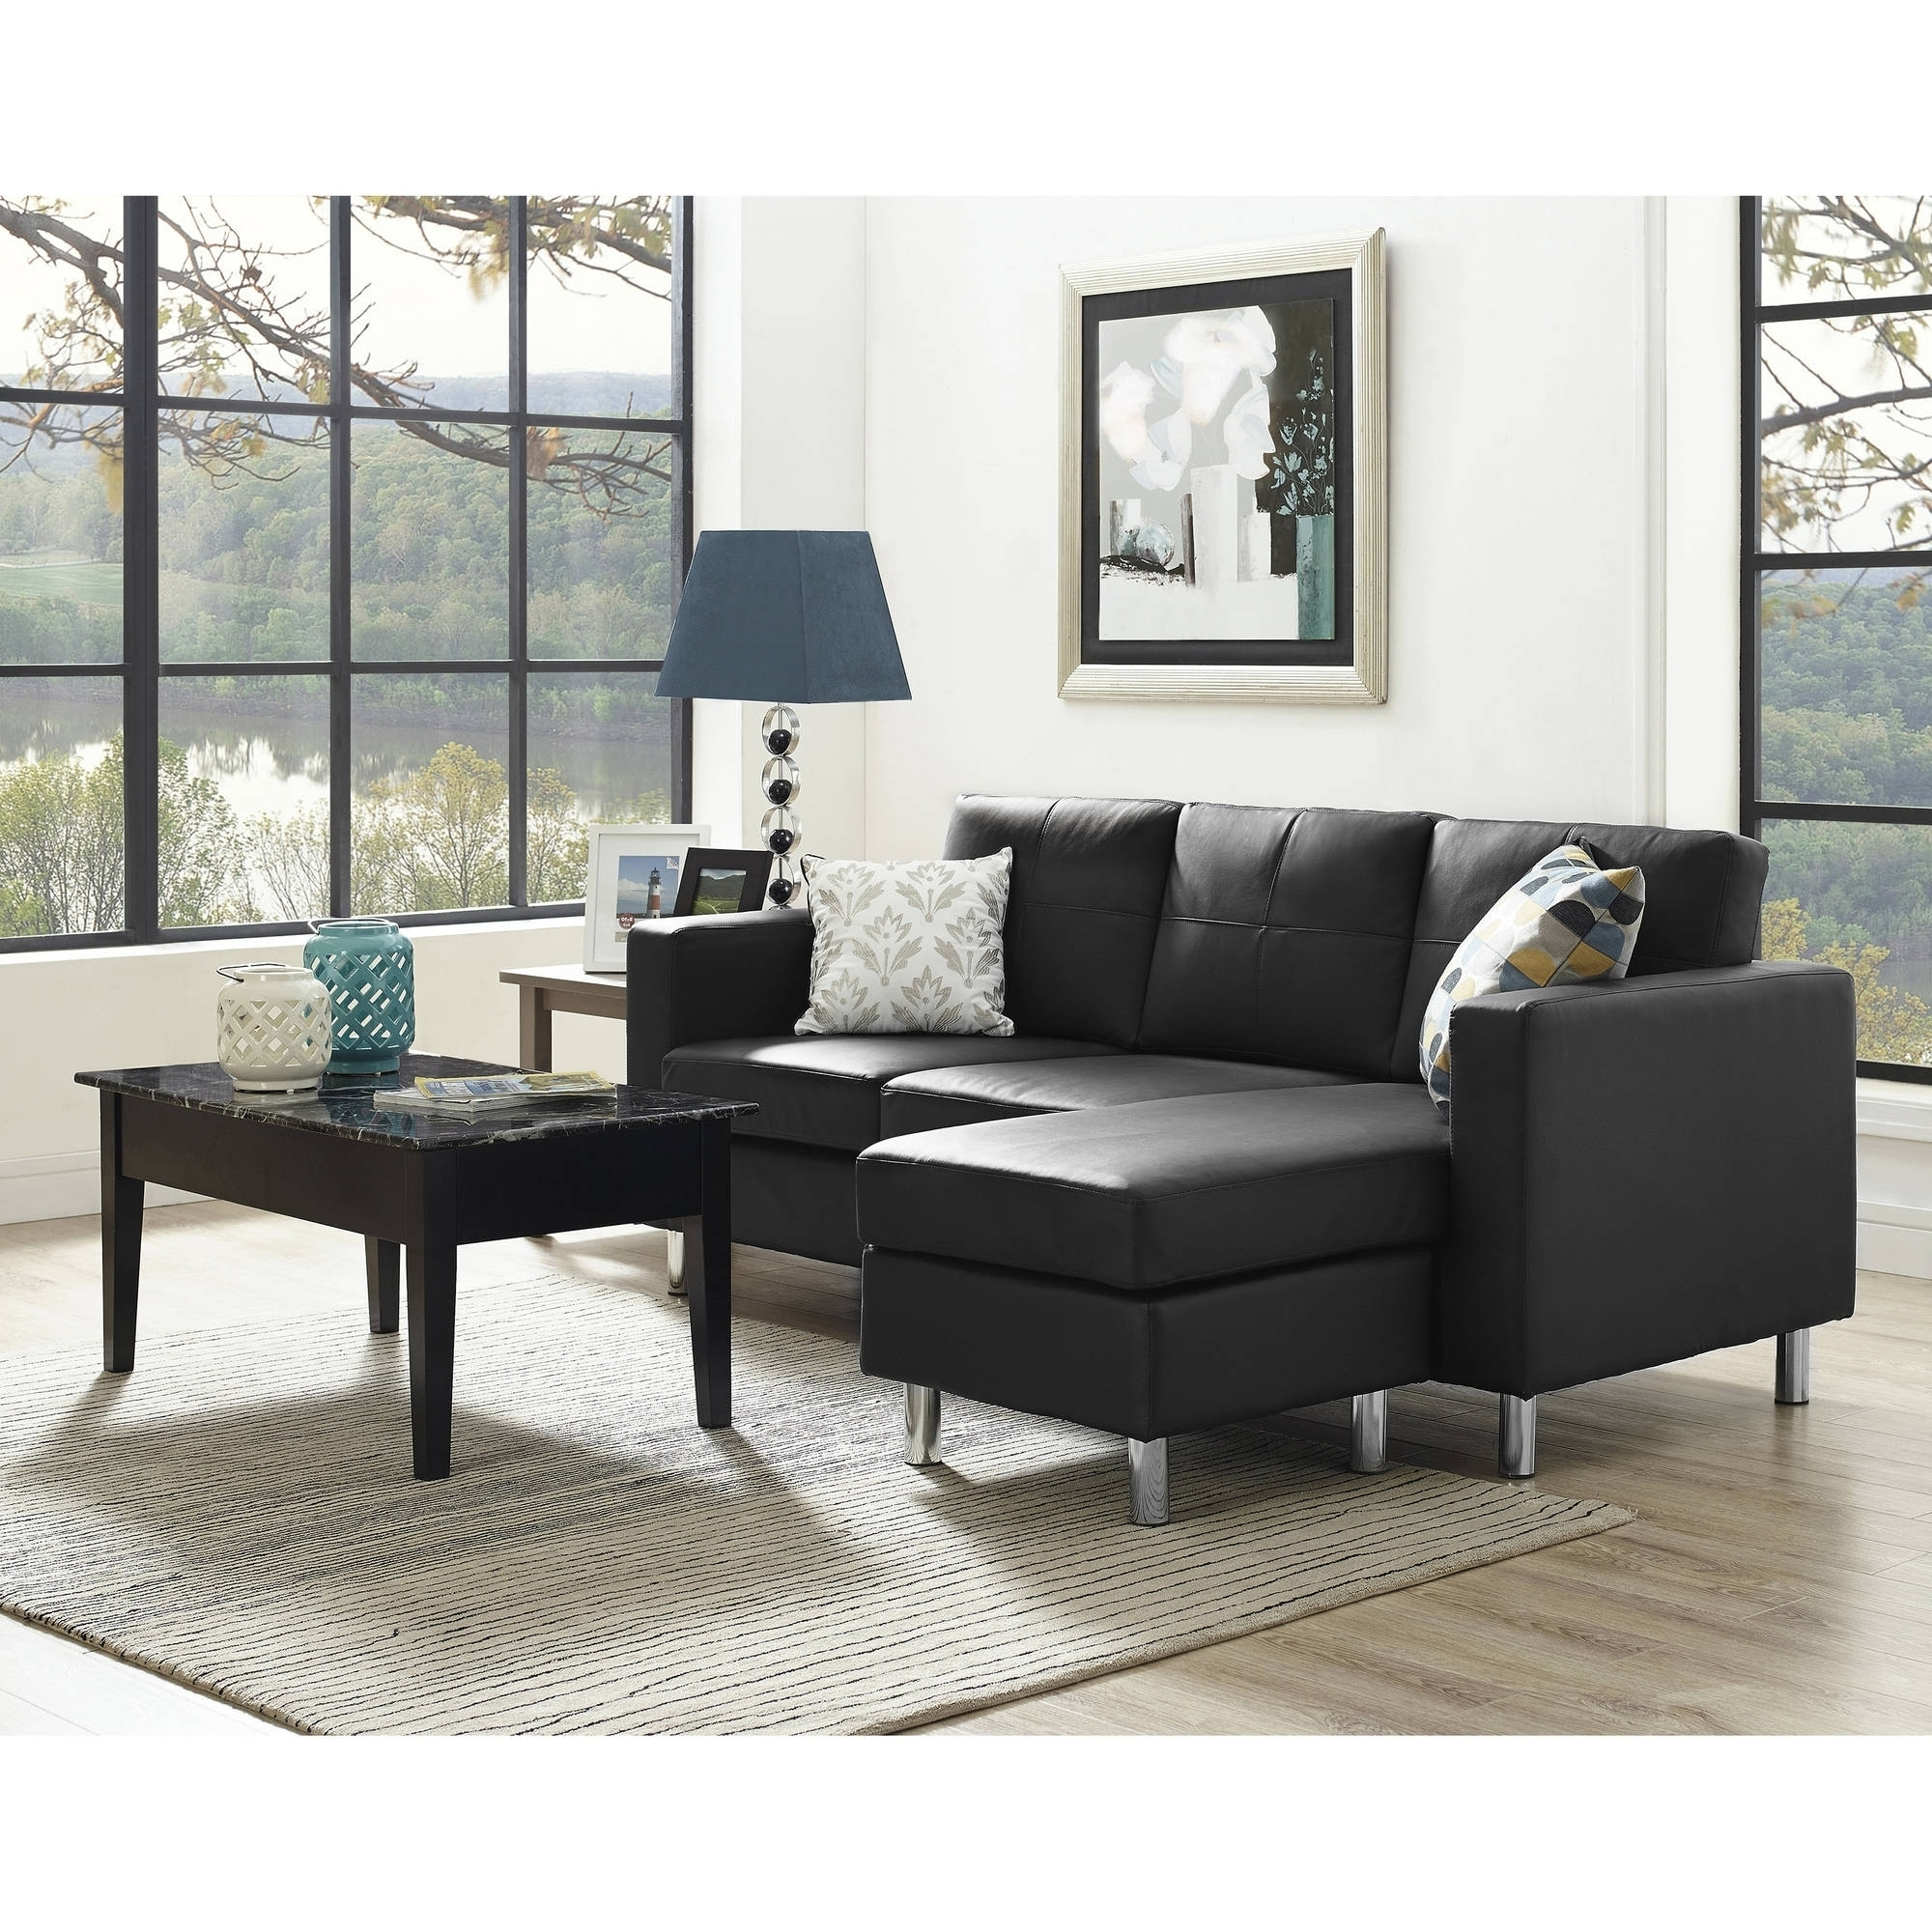 Most Up To Date Edge Small Sectional Sofas For Spaces Sofa Dorel Living The (View 7 of 15)